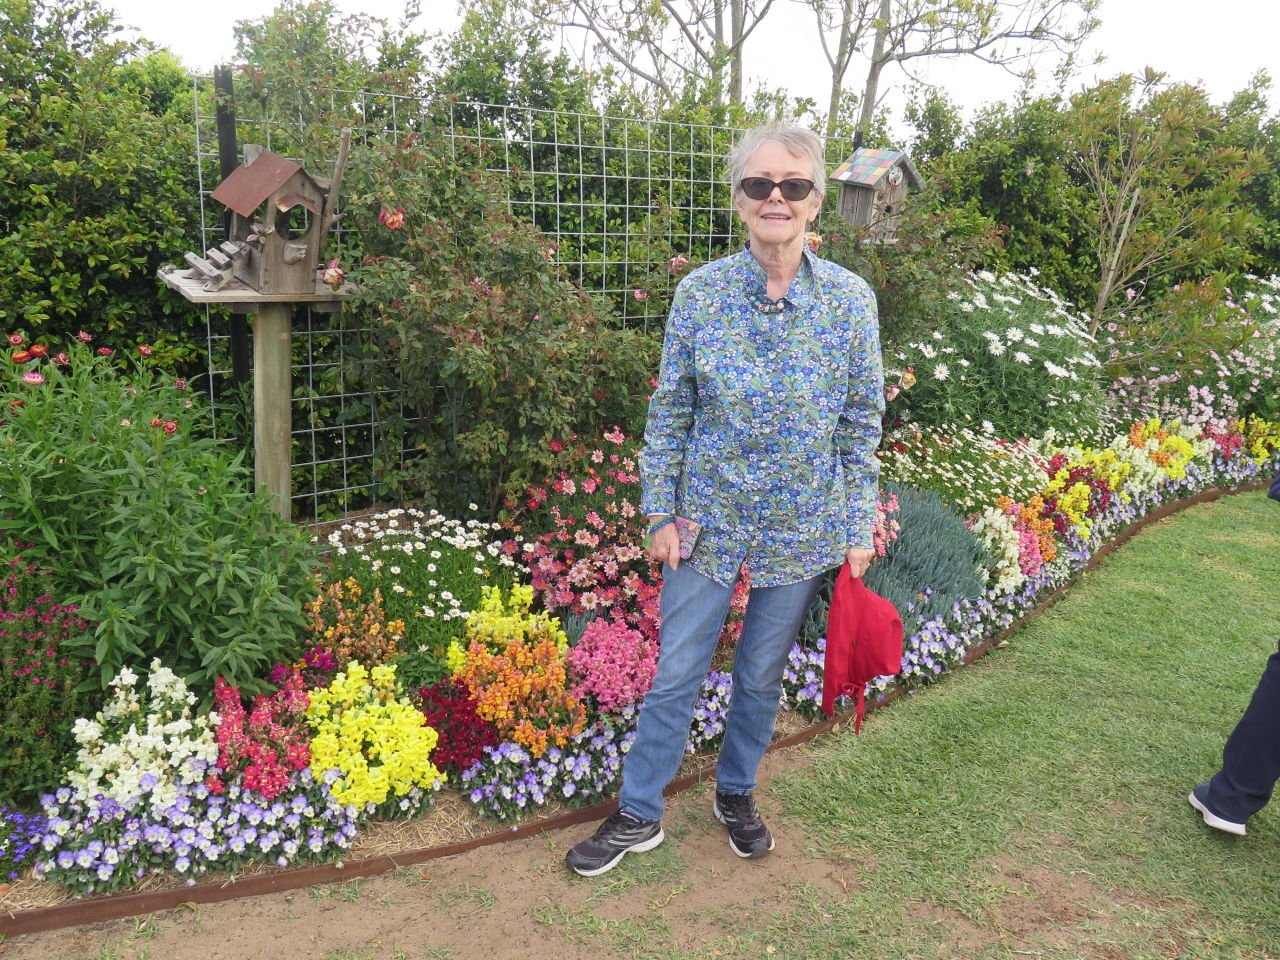 Toowoomba Carnival of flowers 21 Sept 2019